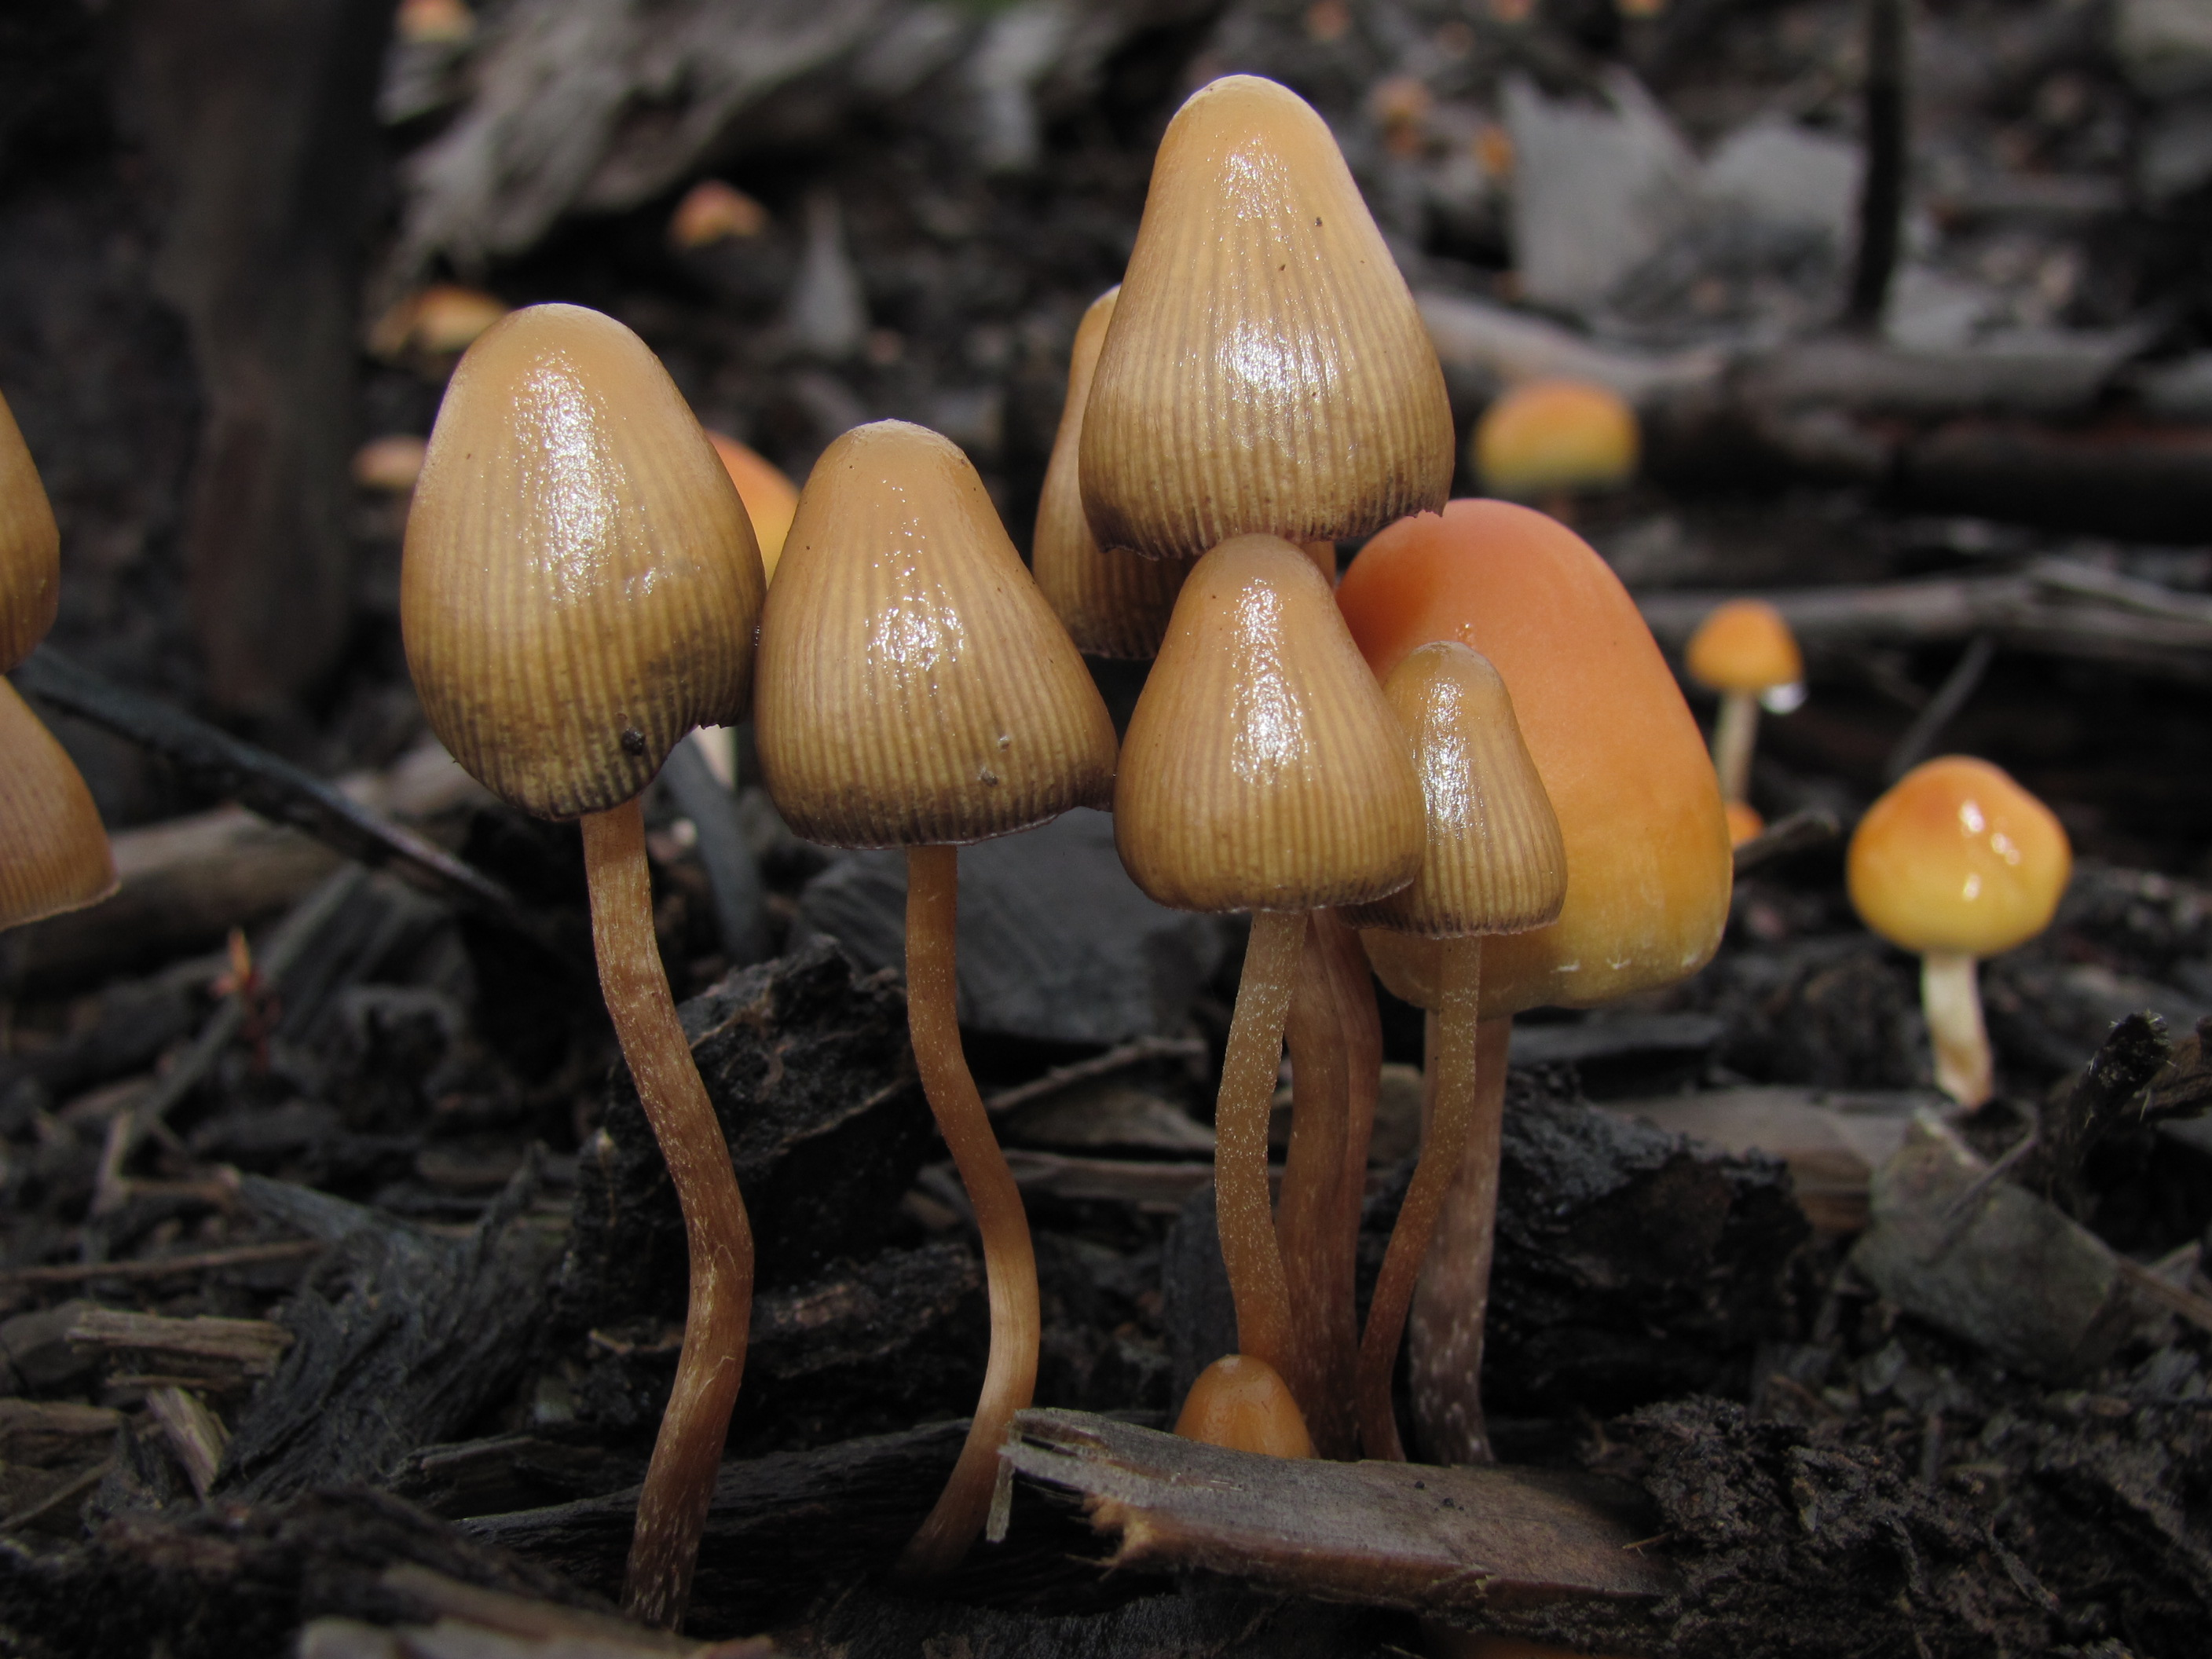 4 Reasons Investors Are Jumping on Psilocybin Mushrooms